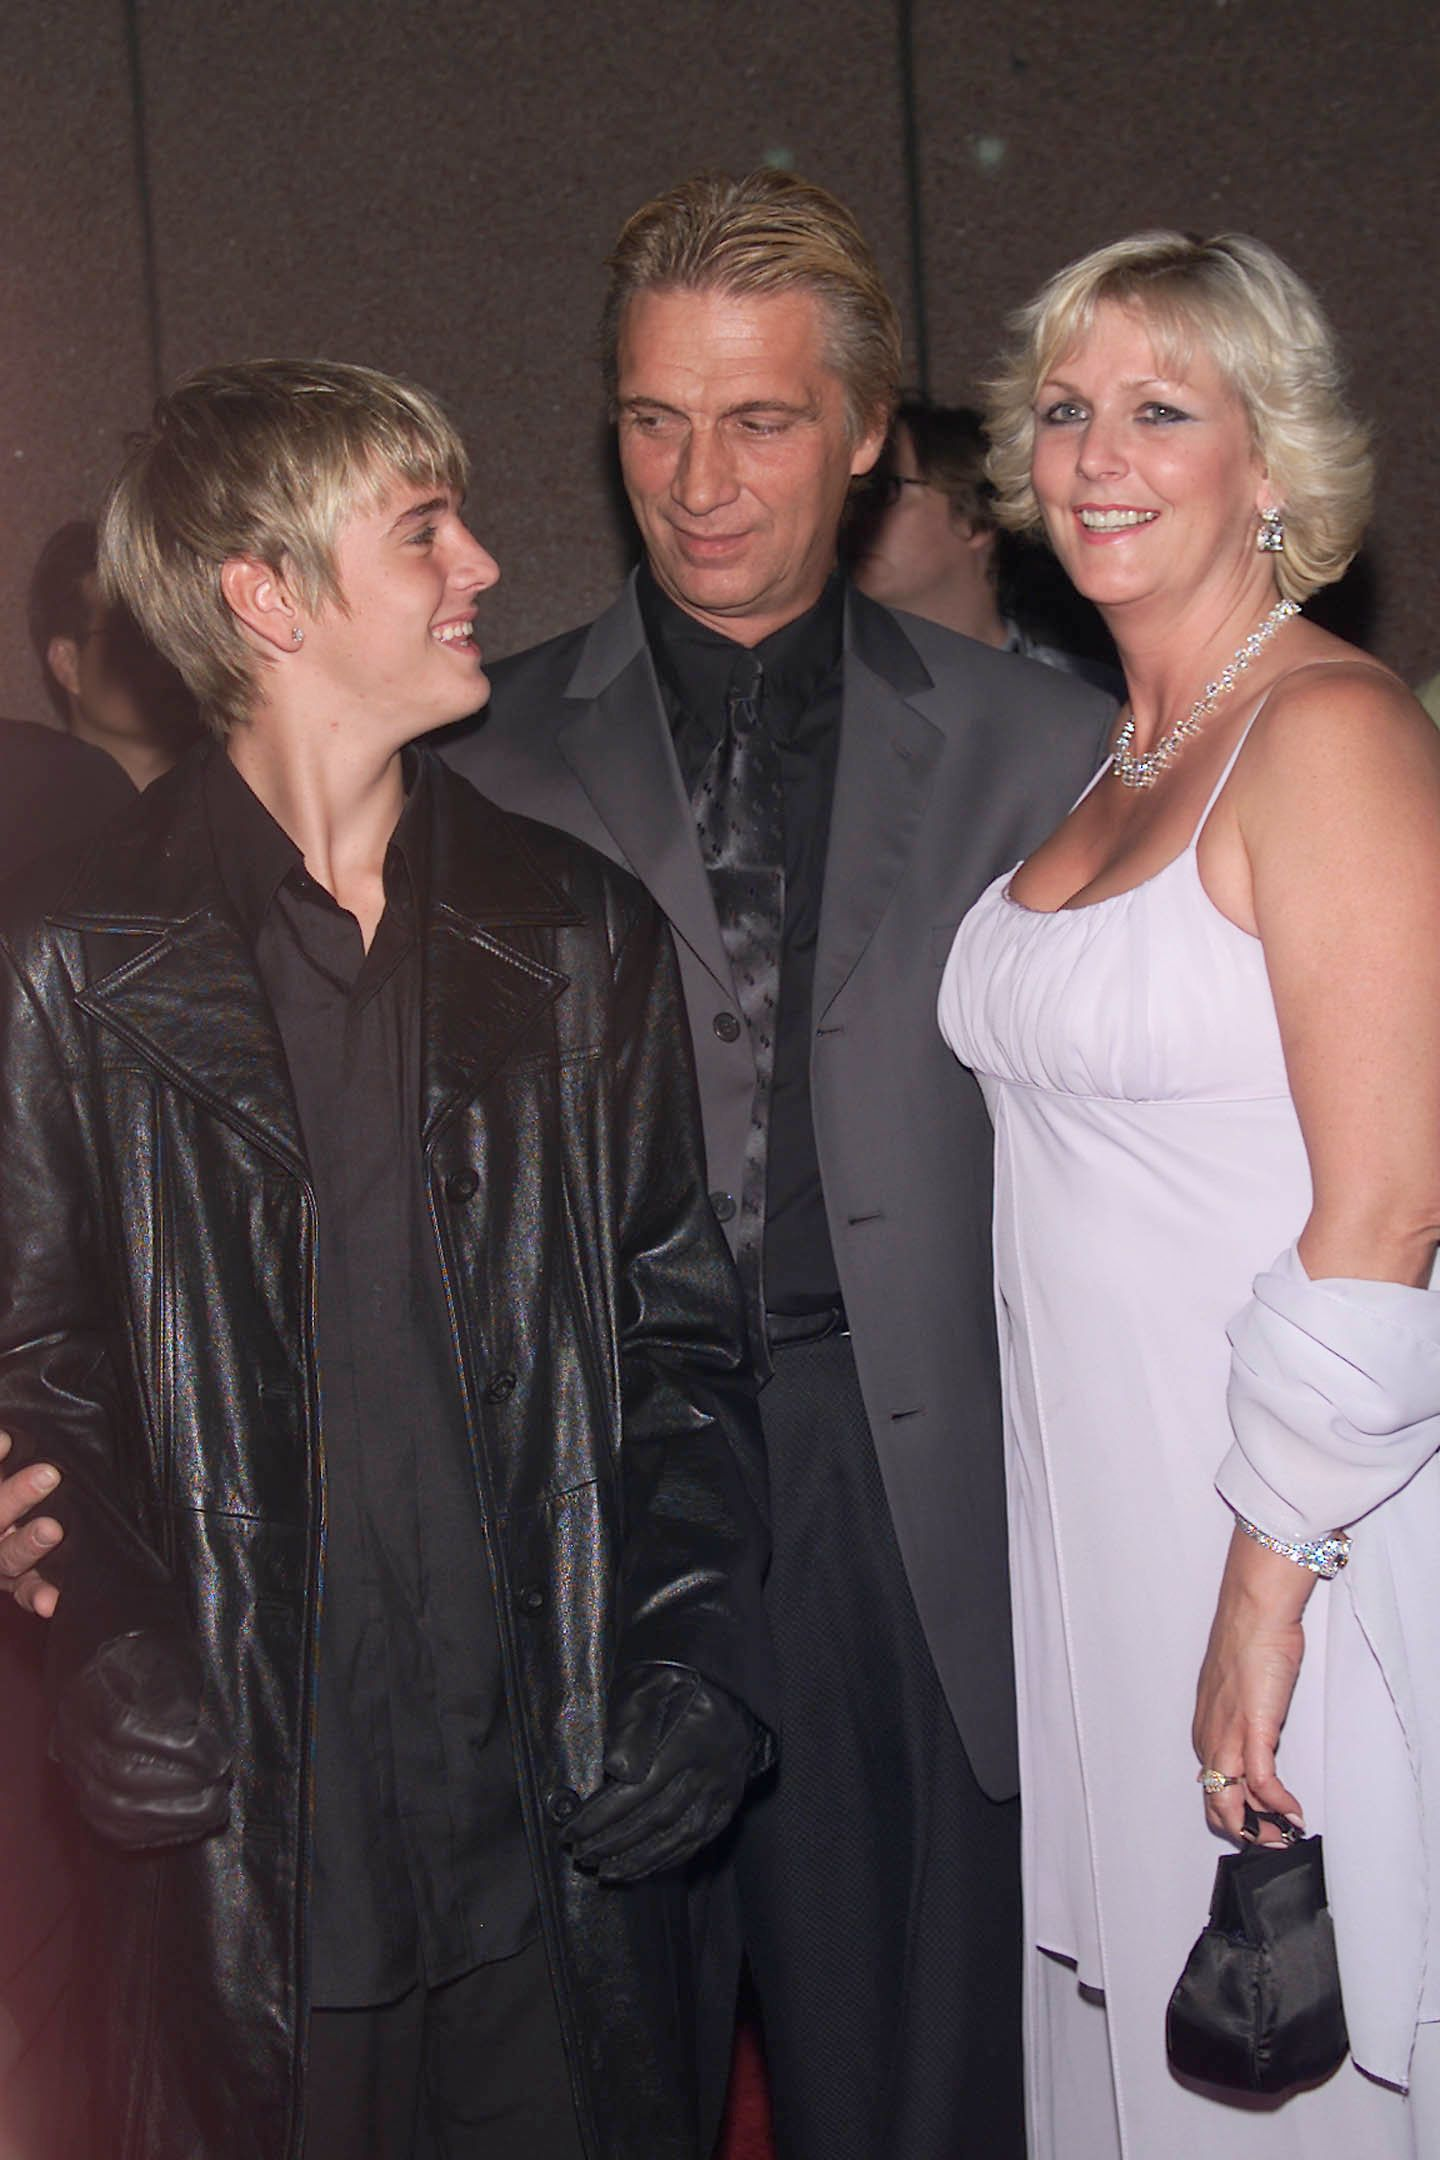 Aaron Carter with his parents Bob and Jane Carter at the Michael Jackson: 30th Anniversary Celebration, The Solo Years at Madison Square Garden in New York City. 9/7/2001. Photo: Evan Agostini/ImageDirect